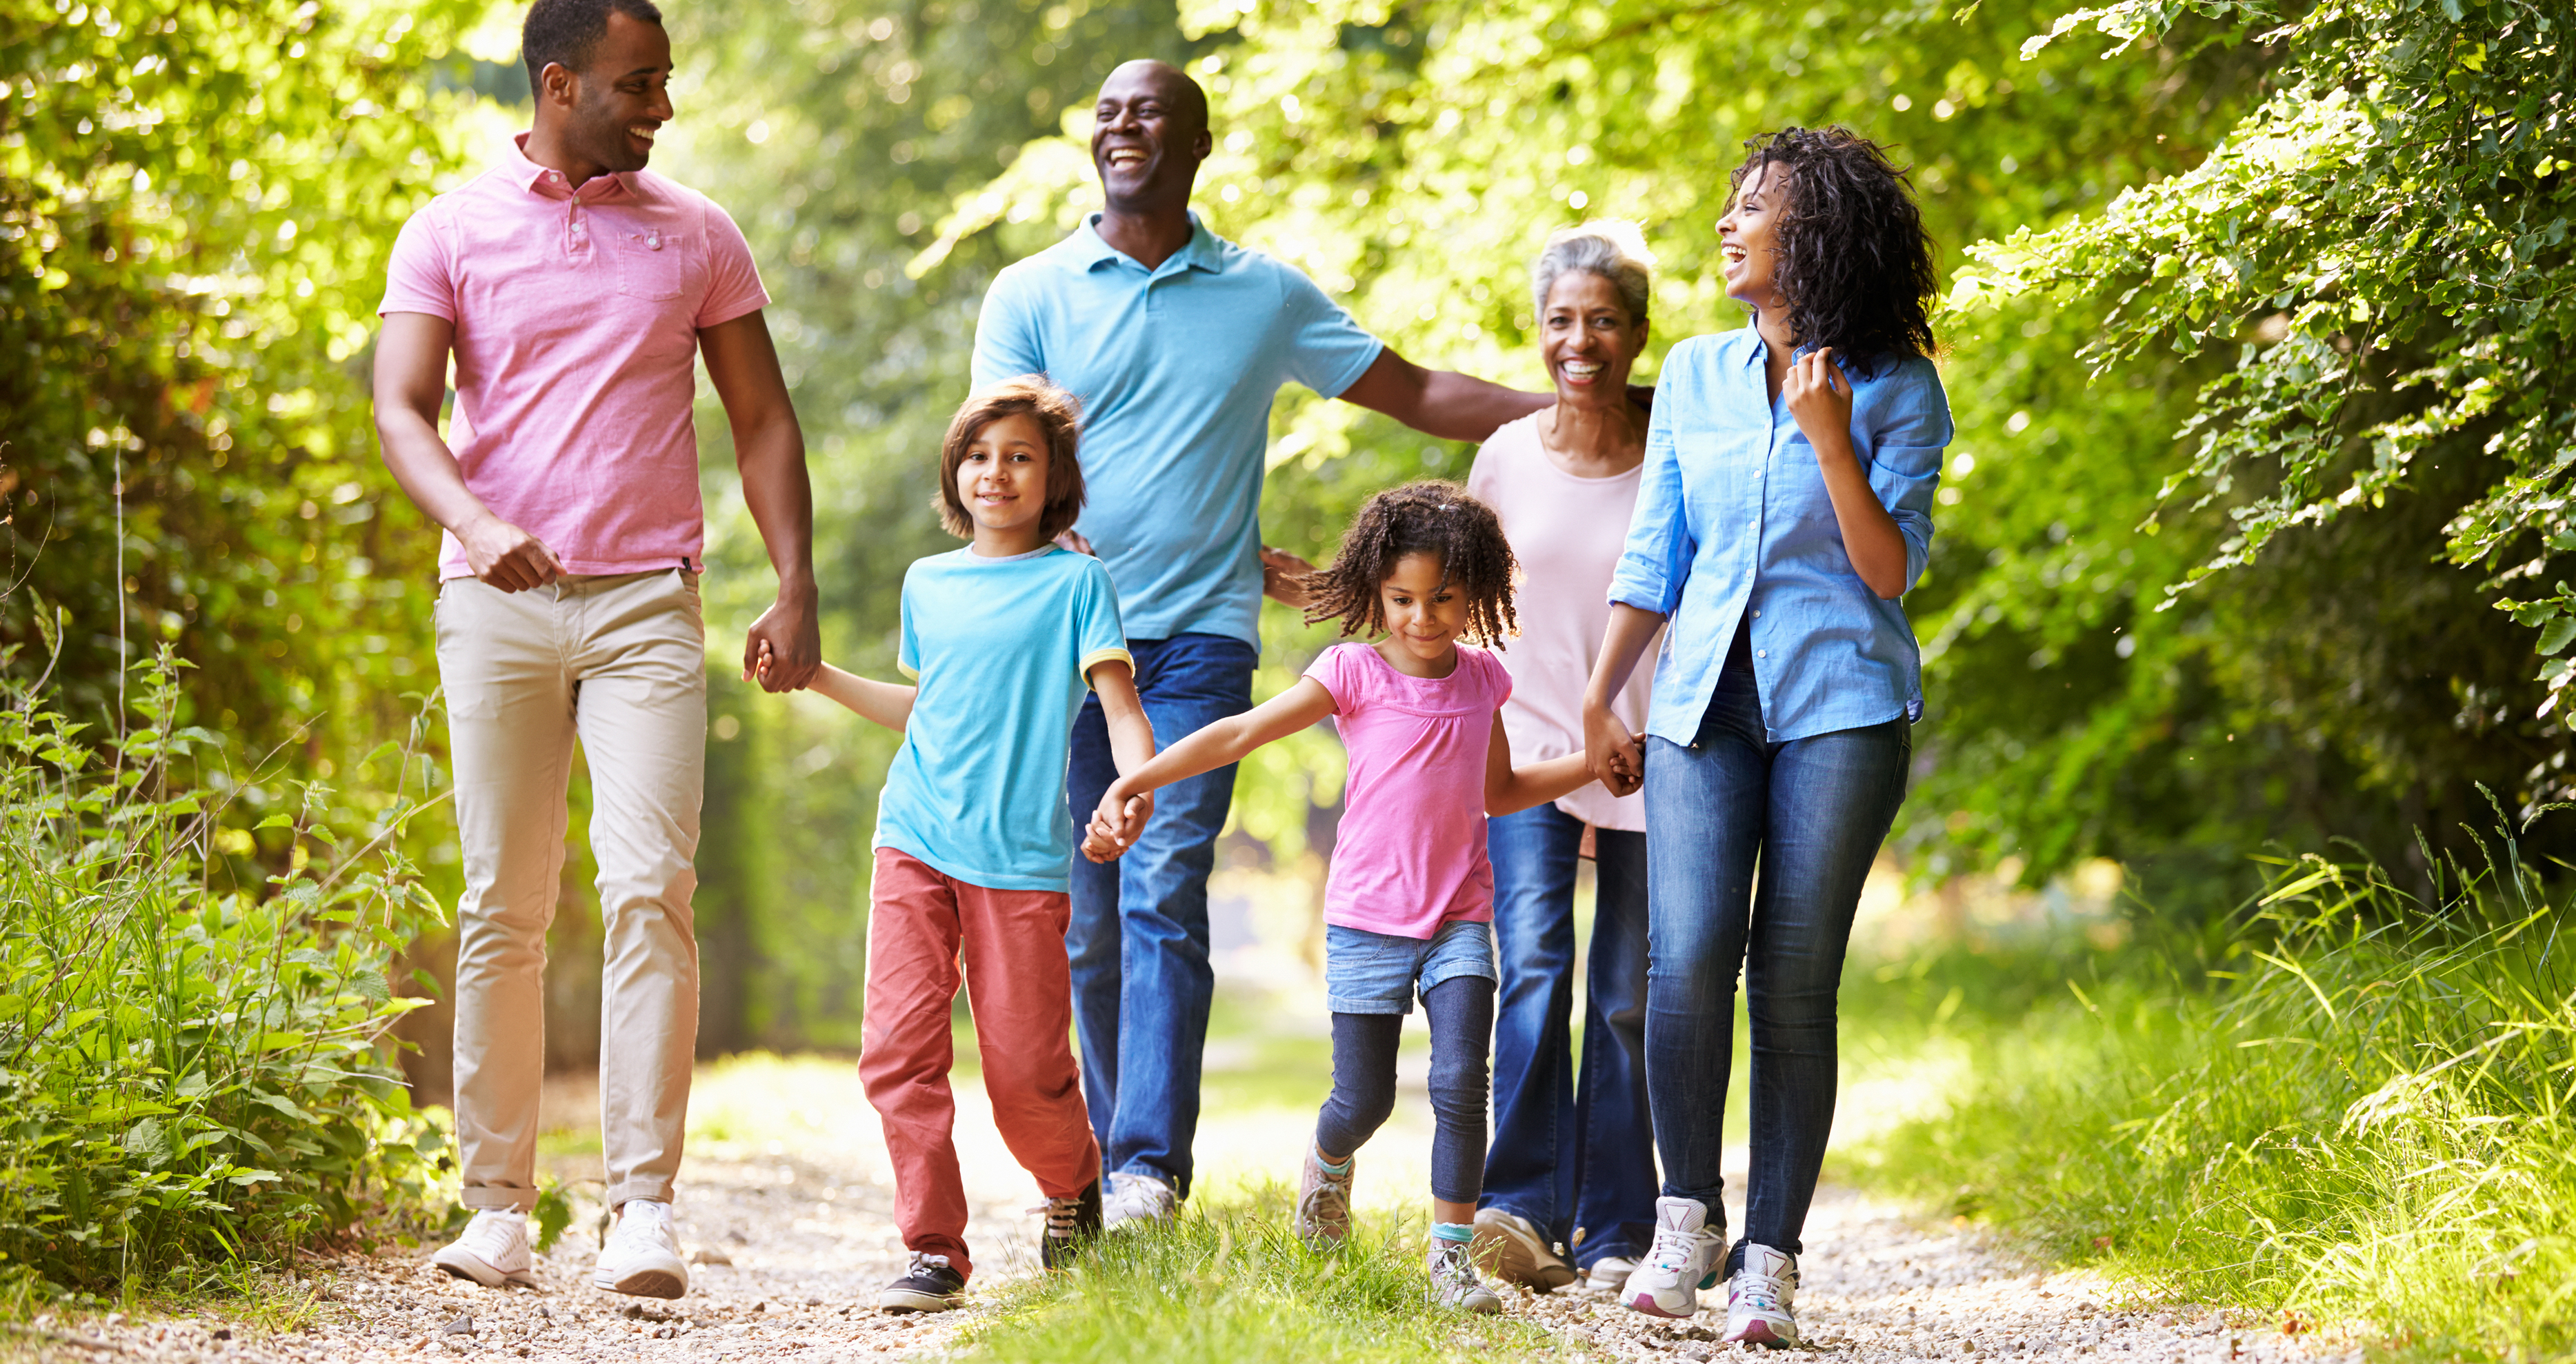 Multiple generations of a family enjoying a walk for physical activity